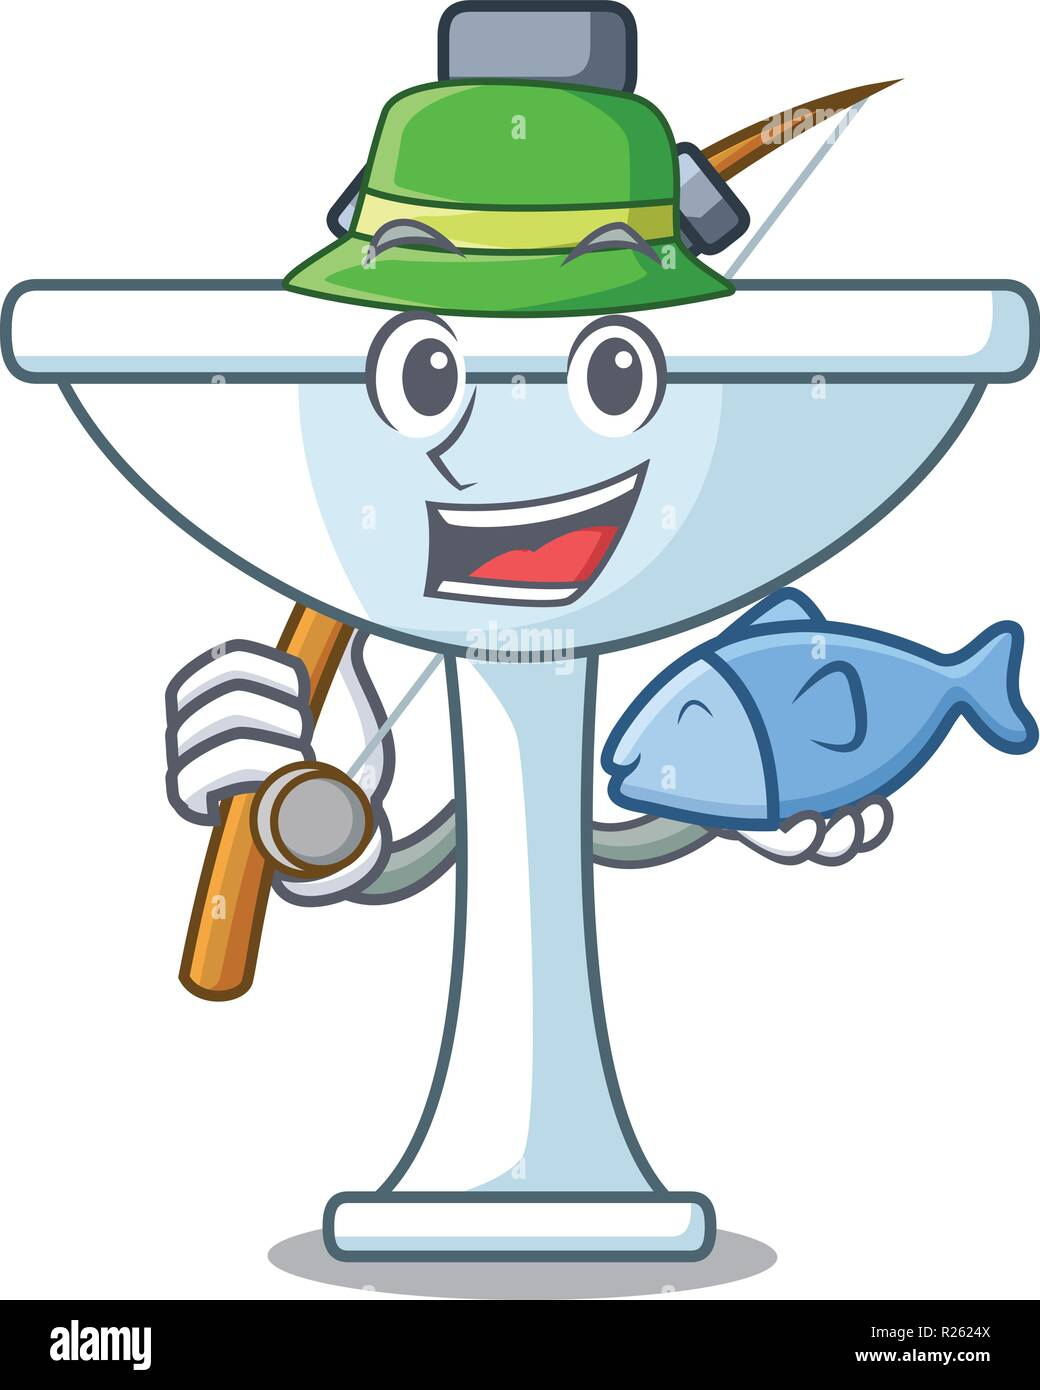 Fishing on bath room cartoon sink shape - Stock Image